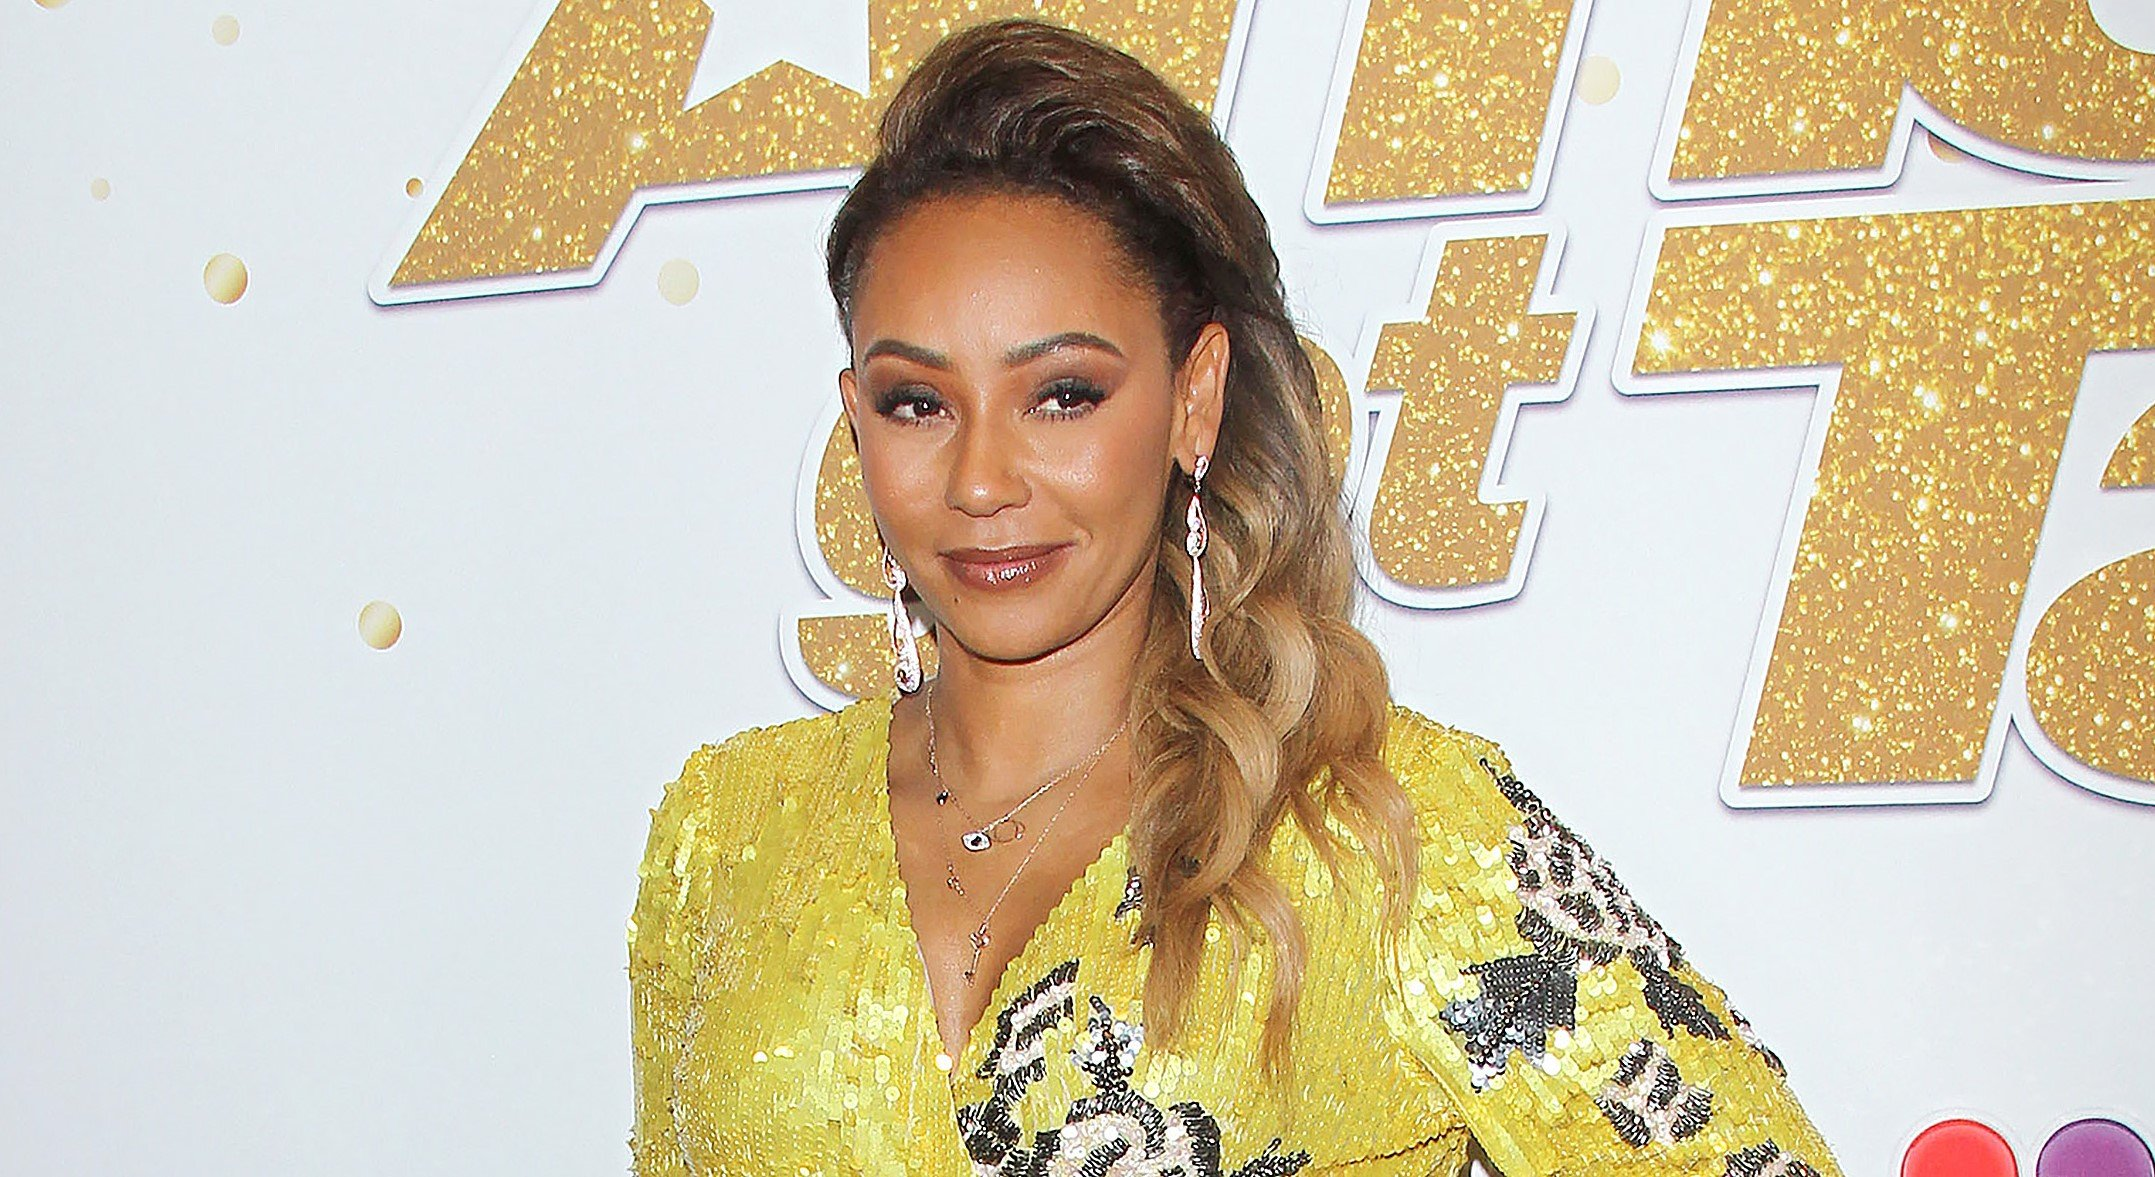 Mel B Shares Way Too Much Information About Her Outrageous -3032